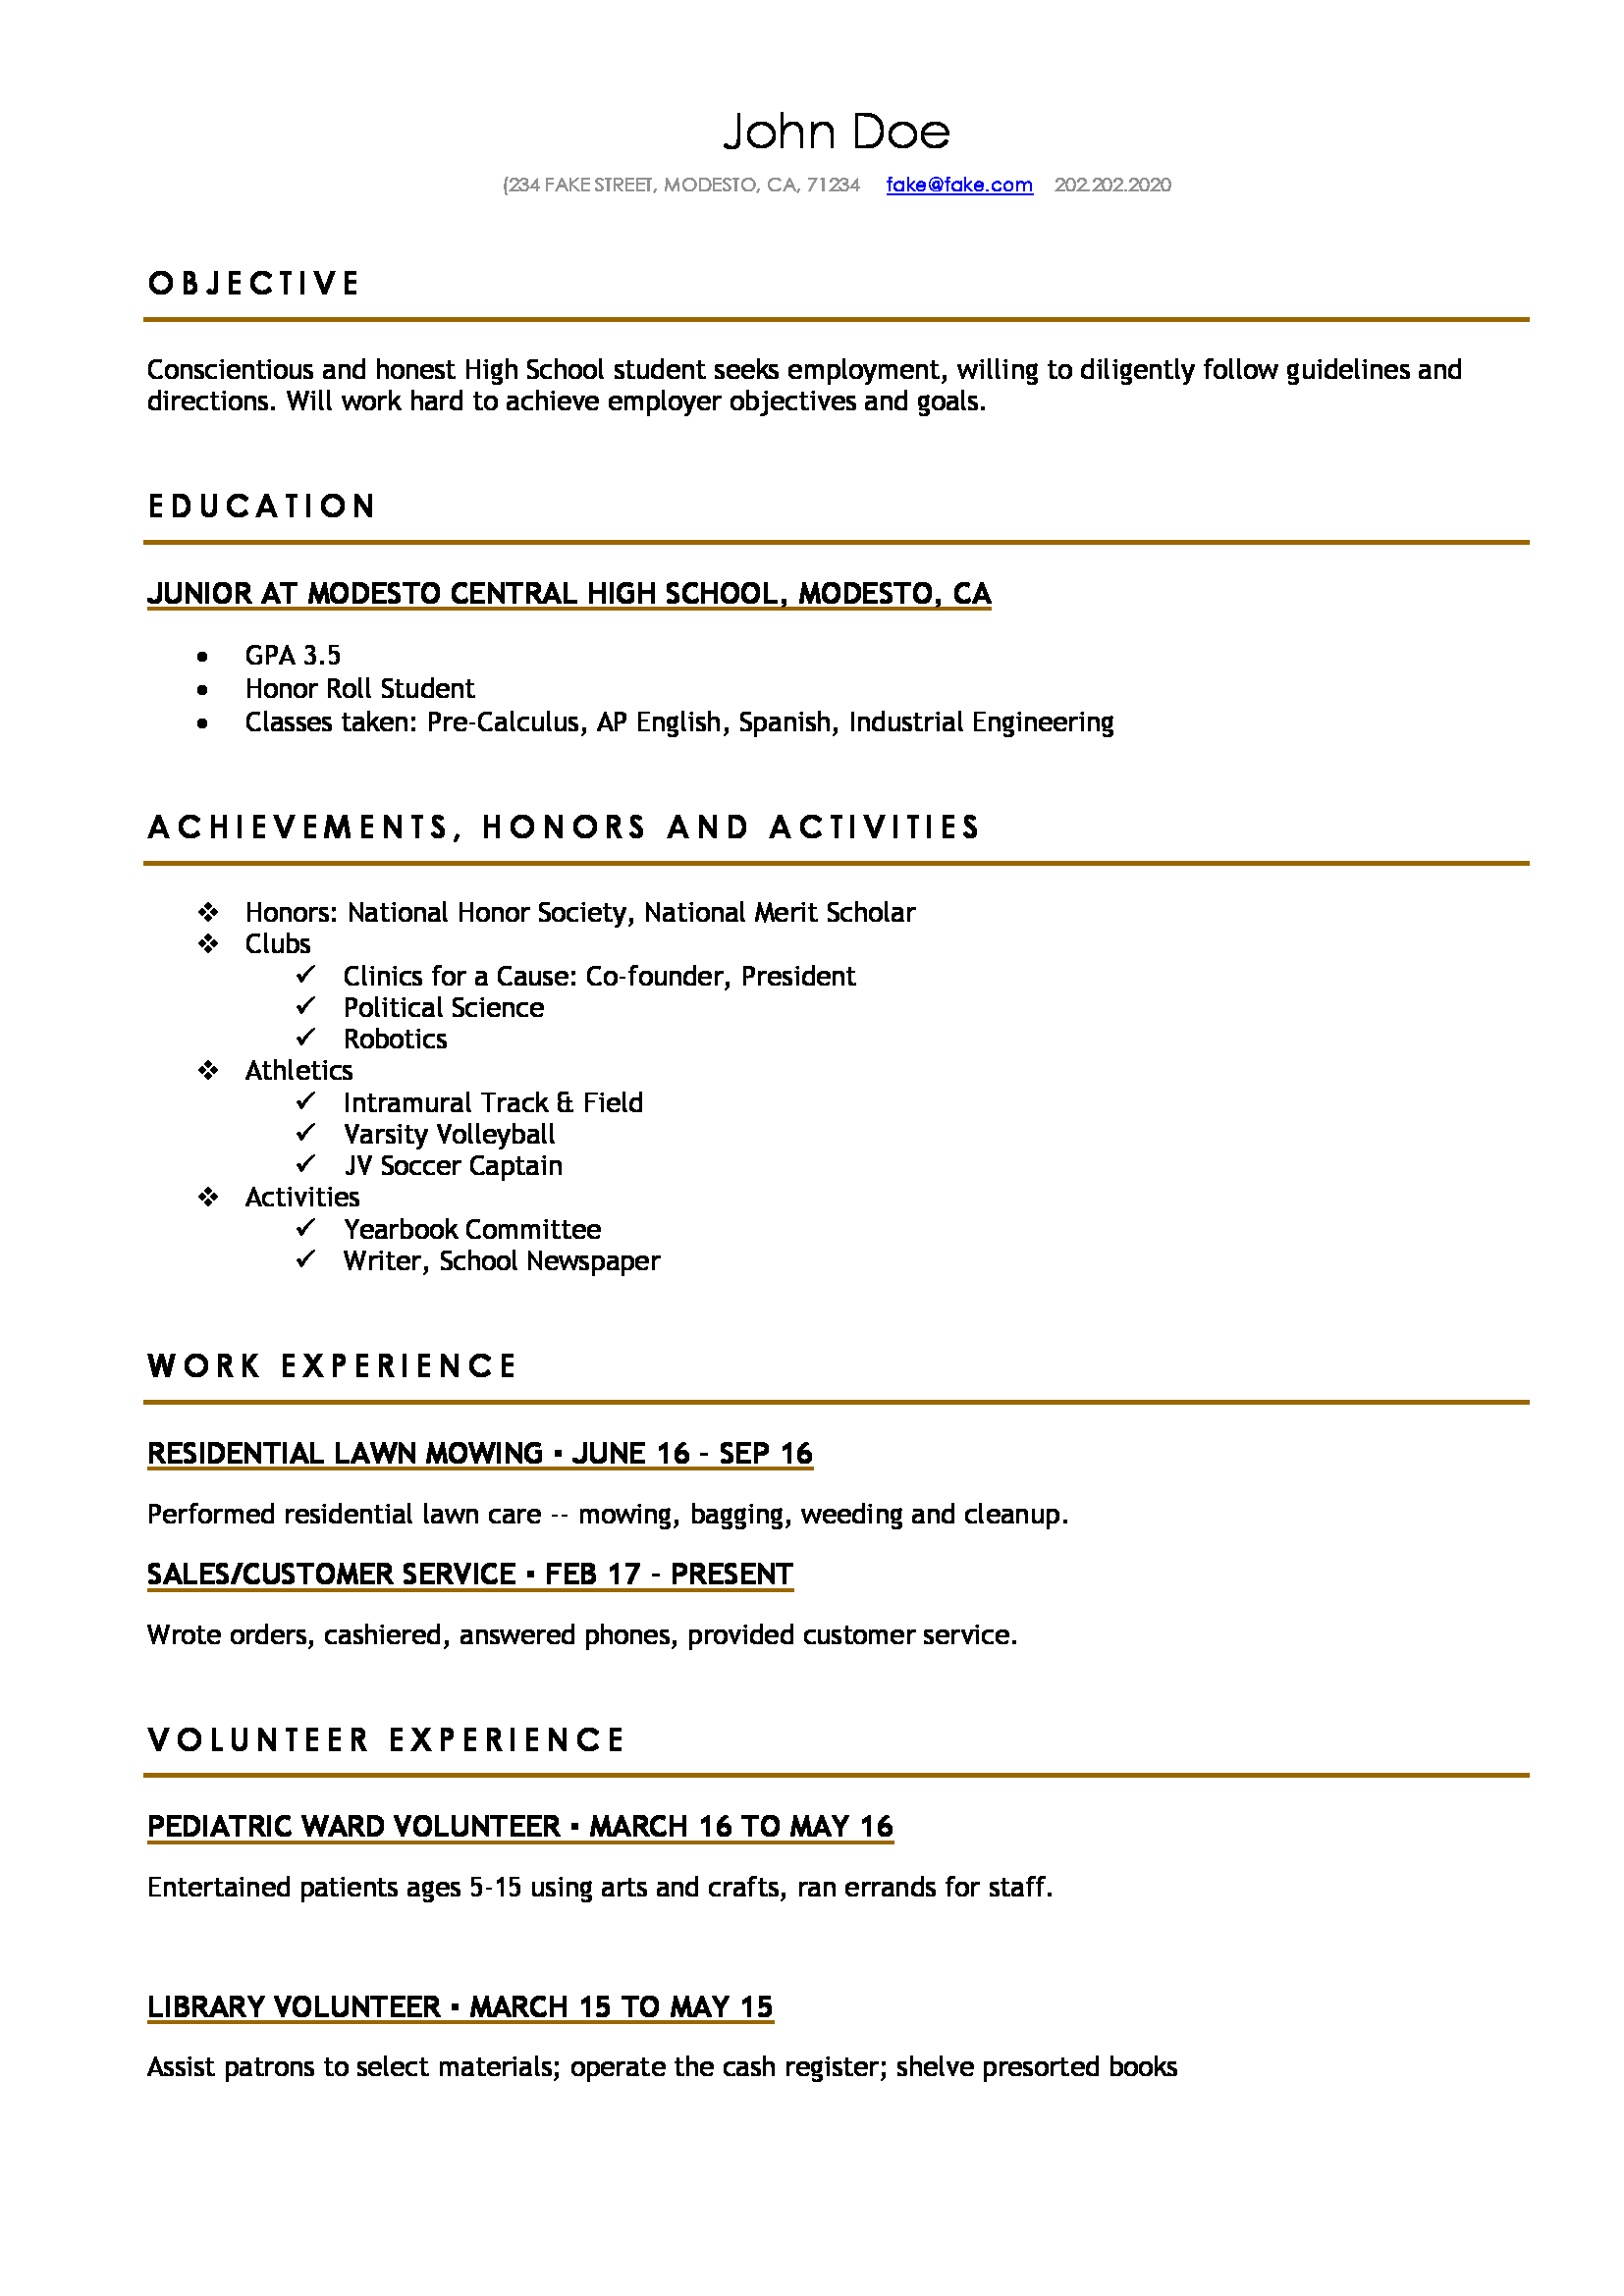 Resume Format For High School Students High School Resume High School Resume Template Student Resume Template